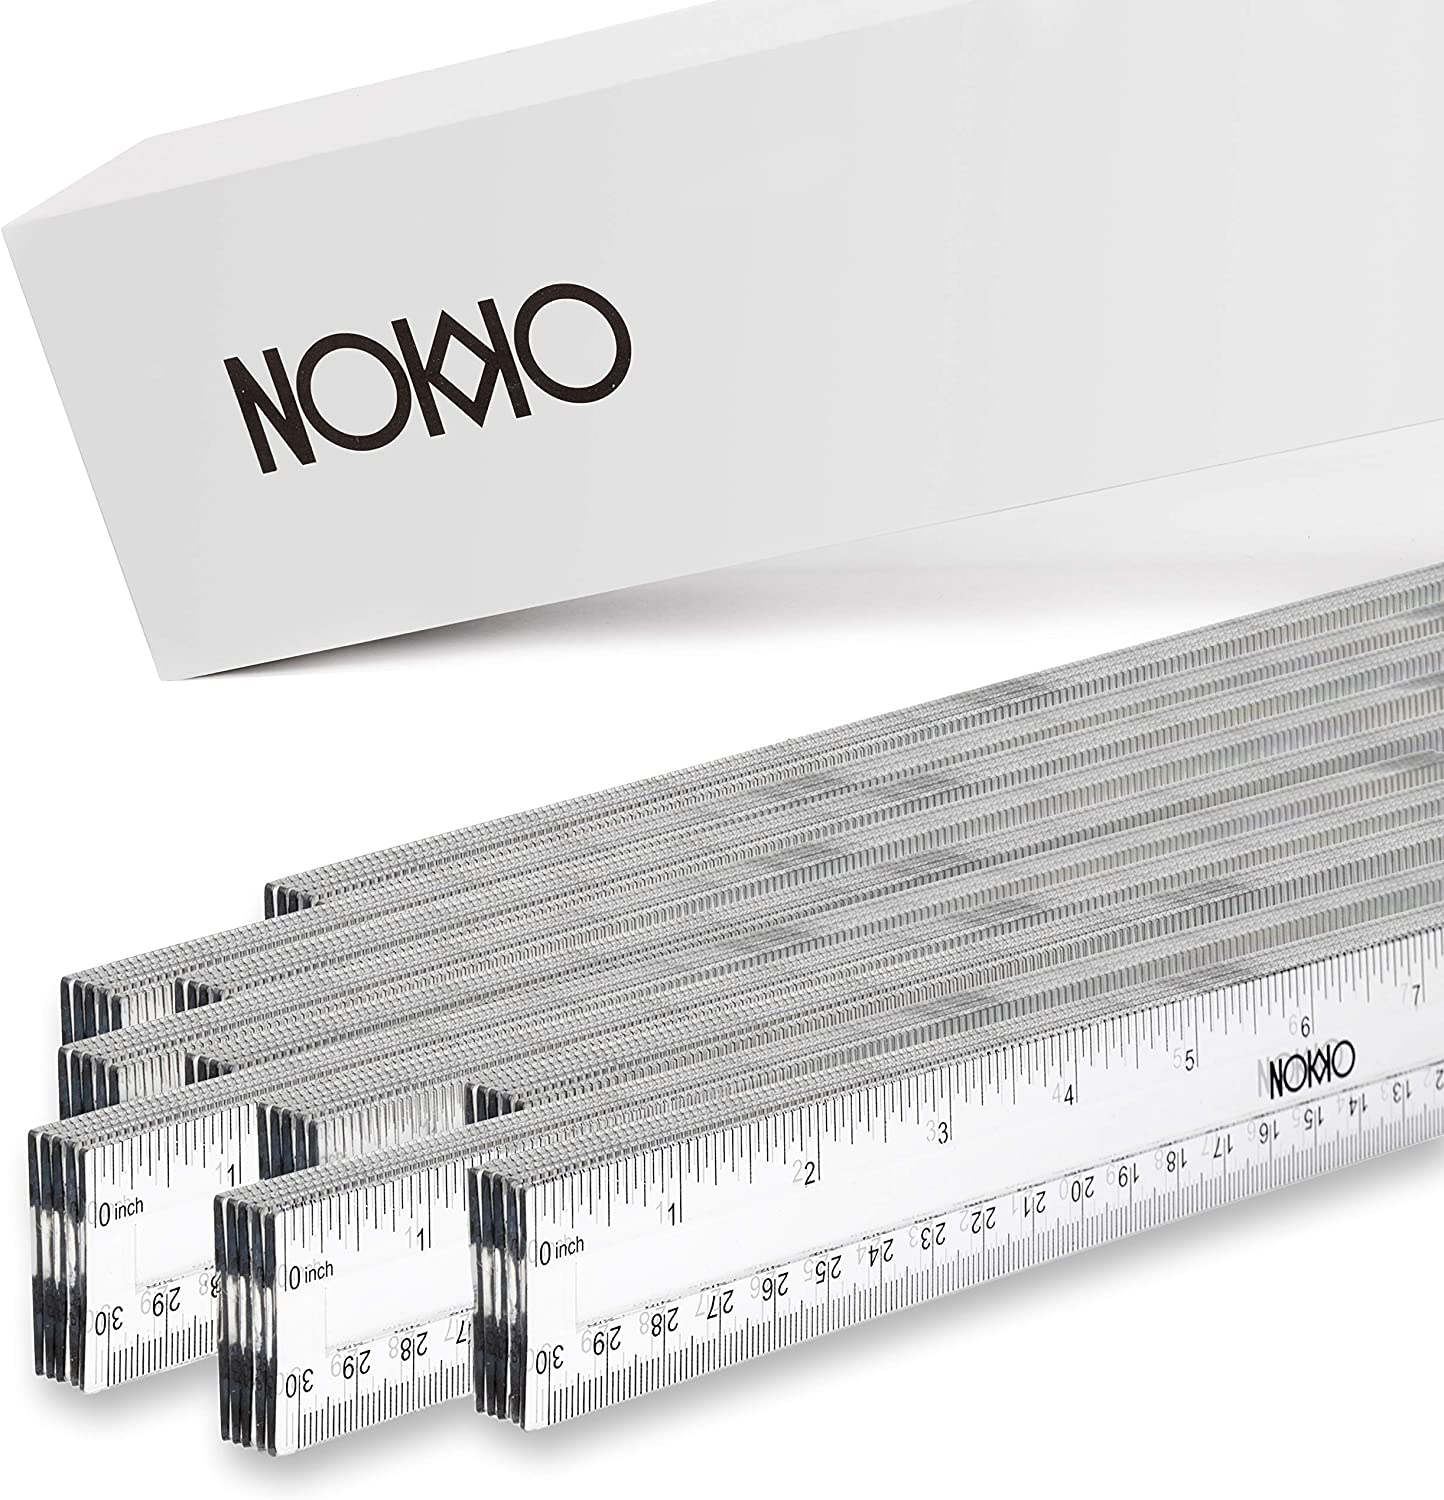 NOKKO Clear Plastic Rulers Bulk 50 Piece Pack - Transparent 12 Inch / 30 Centimeter Straight-Edge Measurement Tool - Easy to Read School and Office Supplies for Students, Teachers and Artists